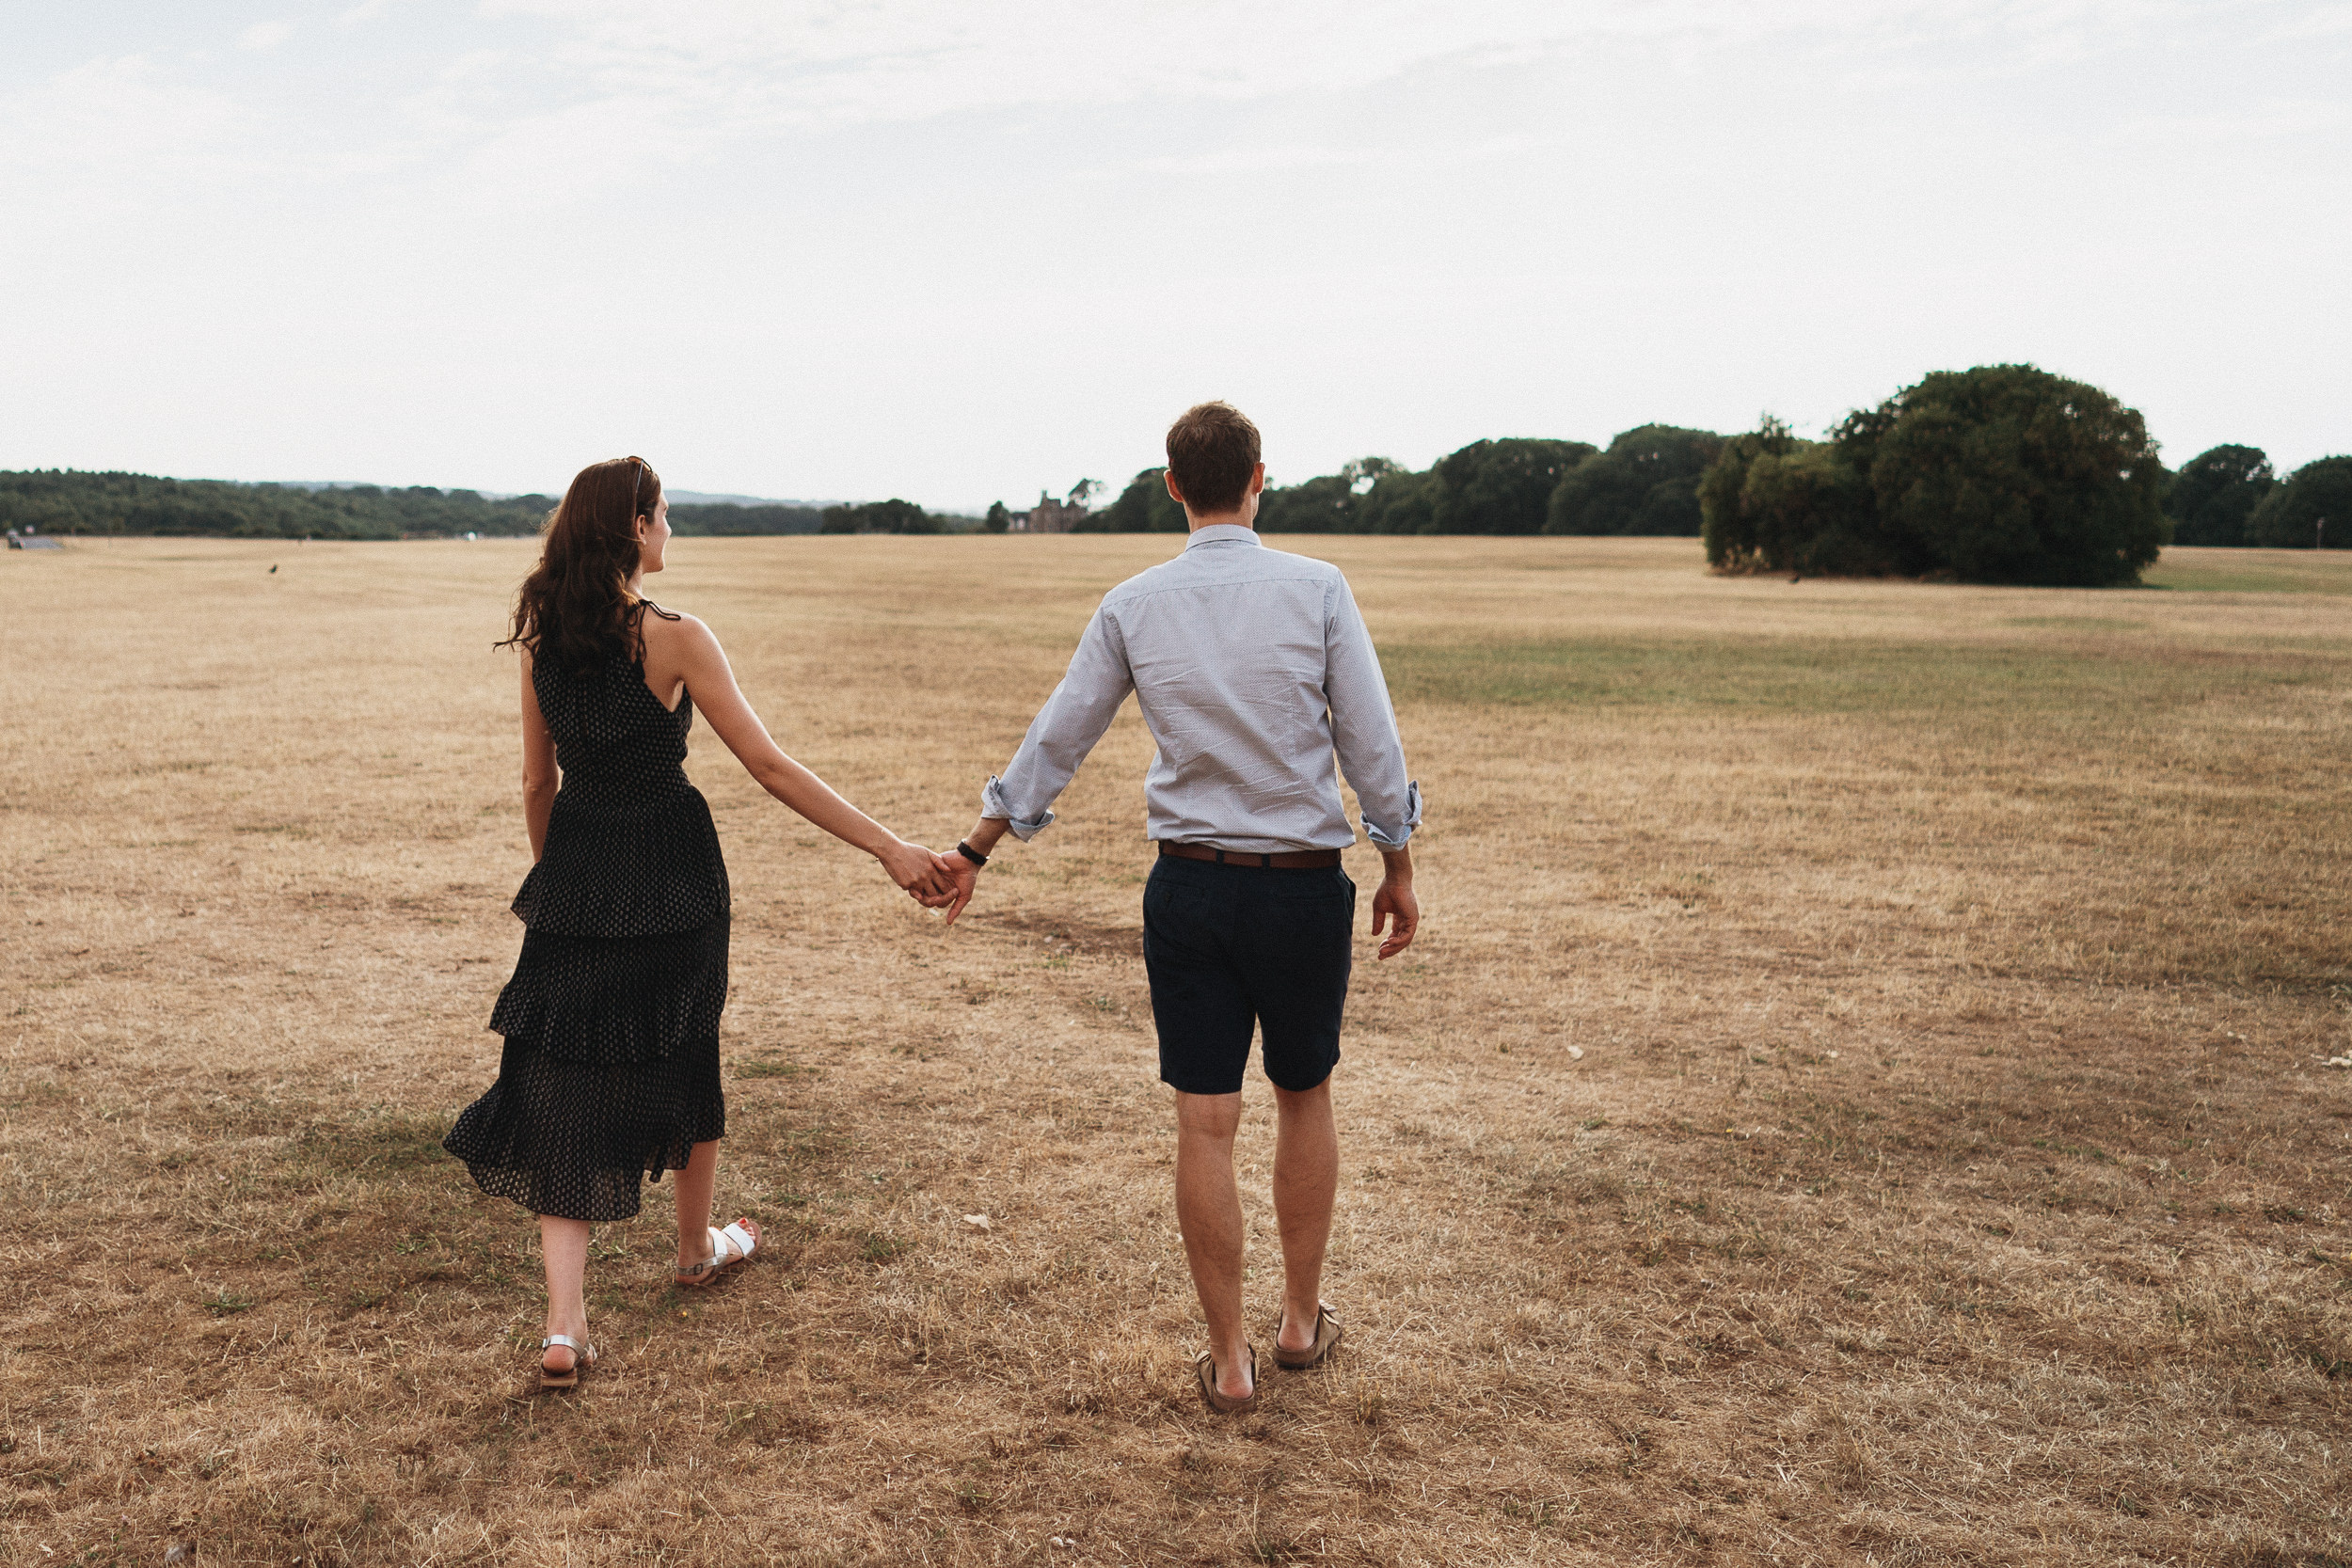 Engagement Shoot on Clifton Downs - The couple walking hand in hand across the Downs